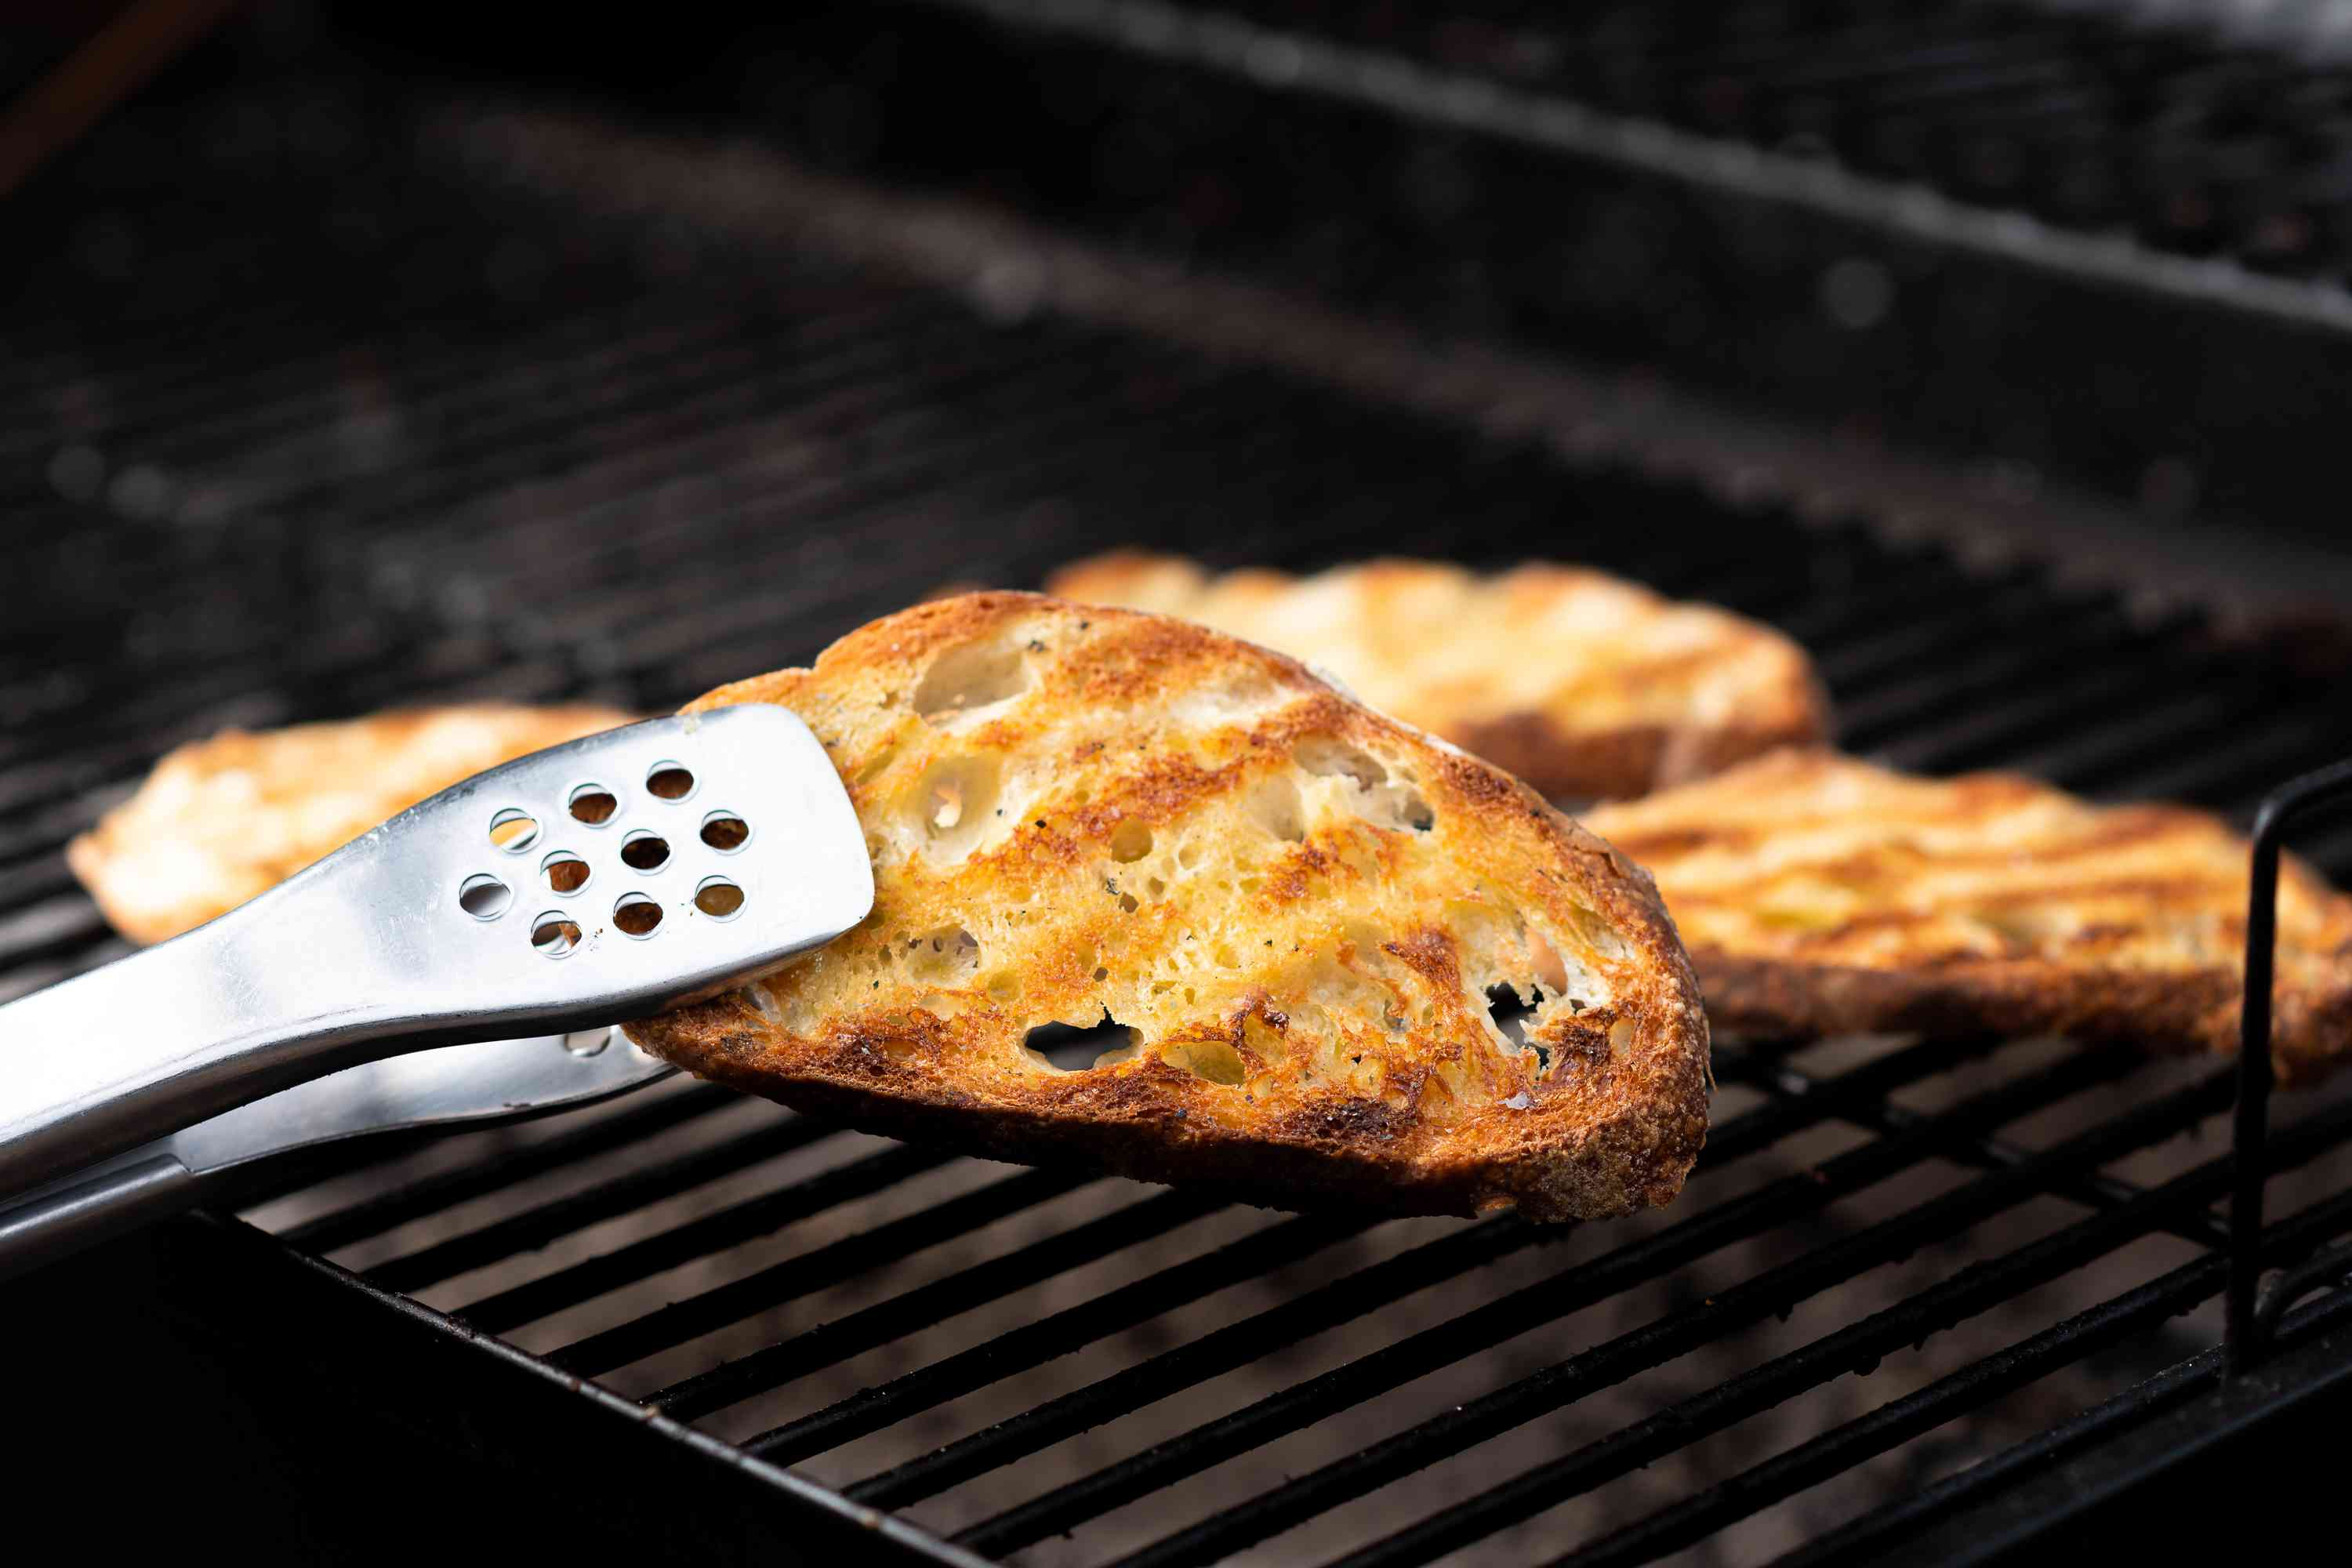 grill pieces of bread, grill marks on bread